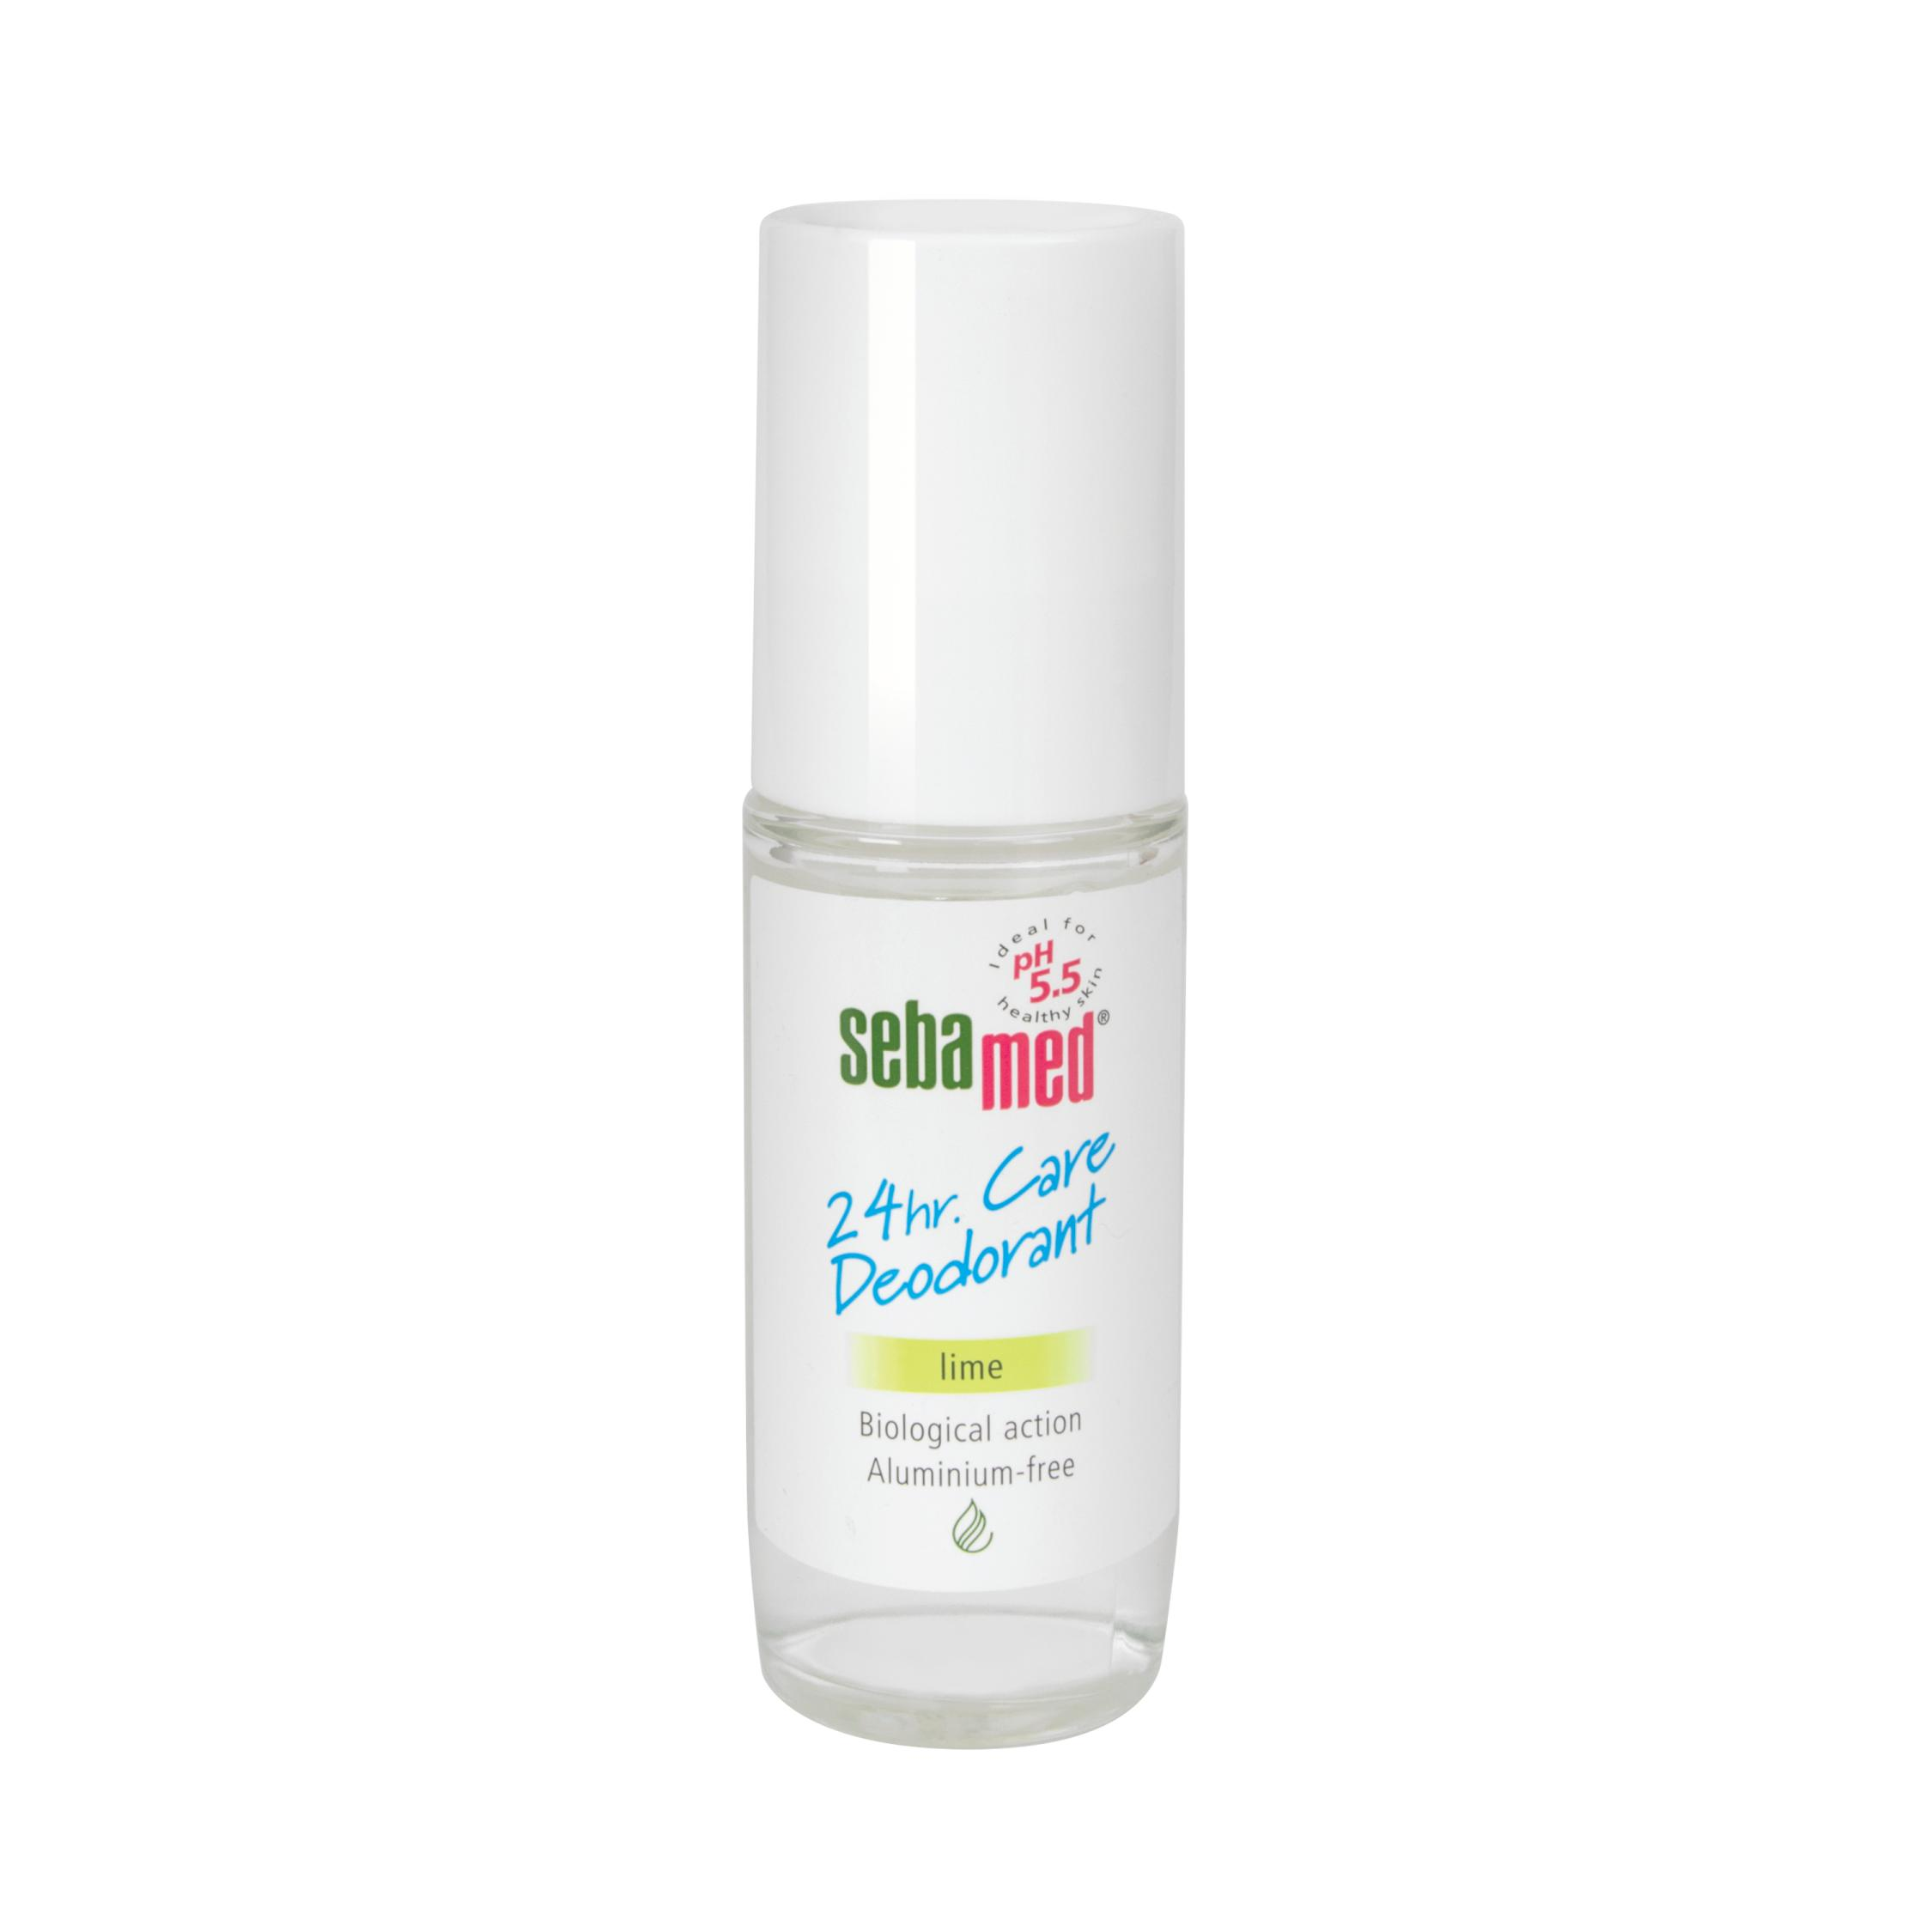 Sebamed 24Hr Deodorant 50ml roll on Lime